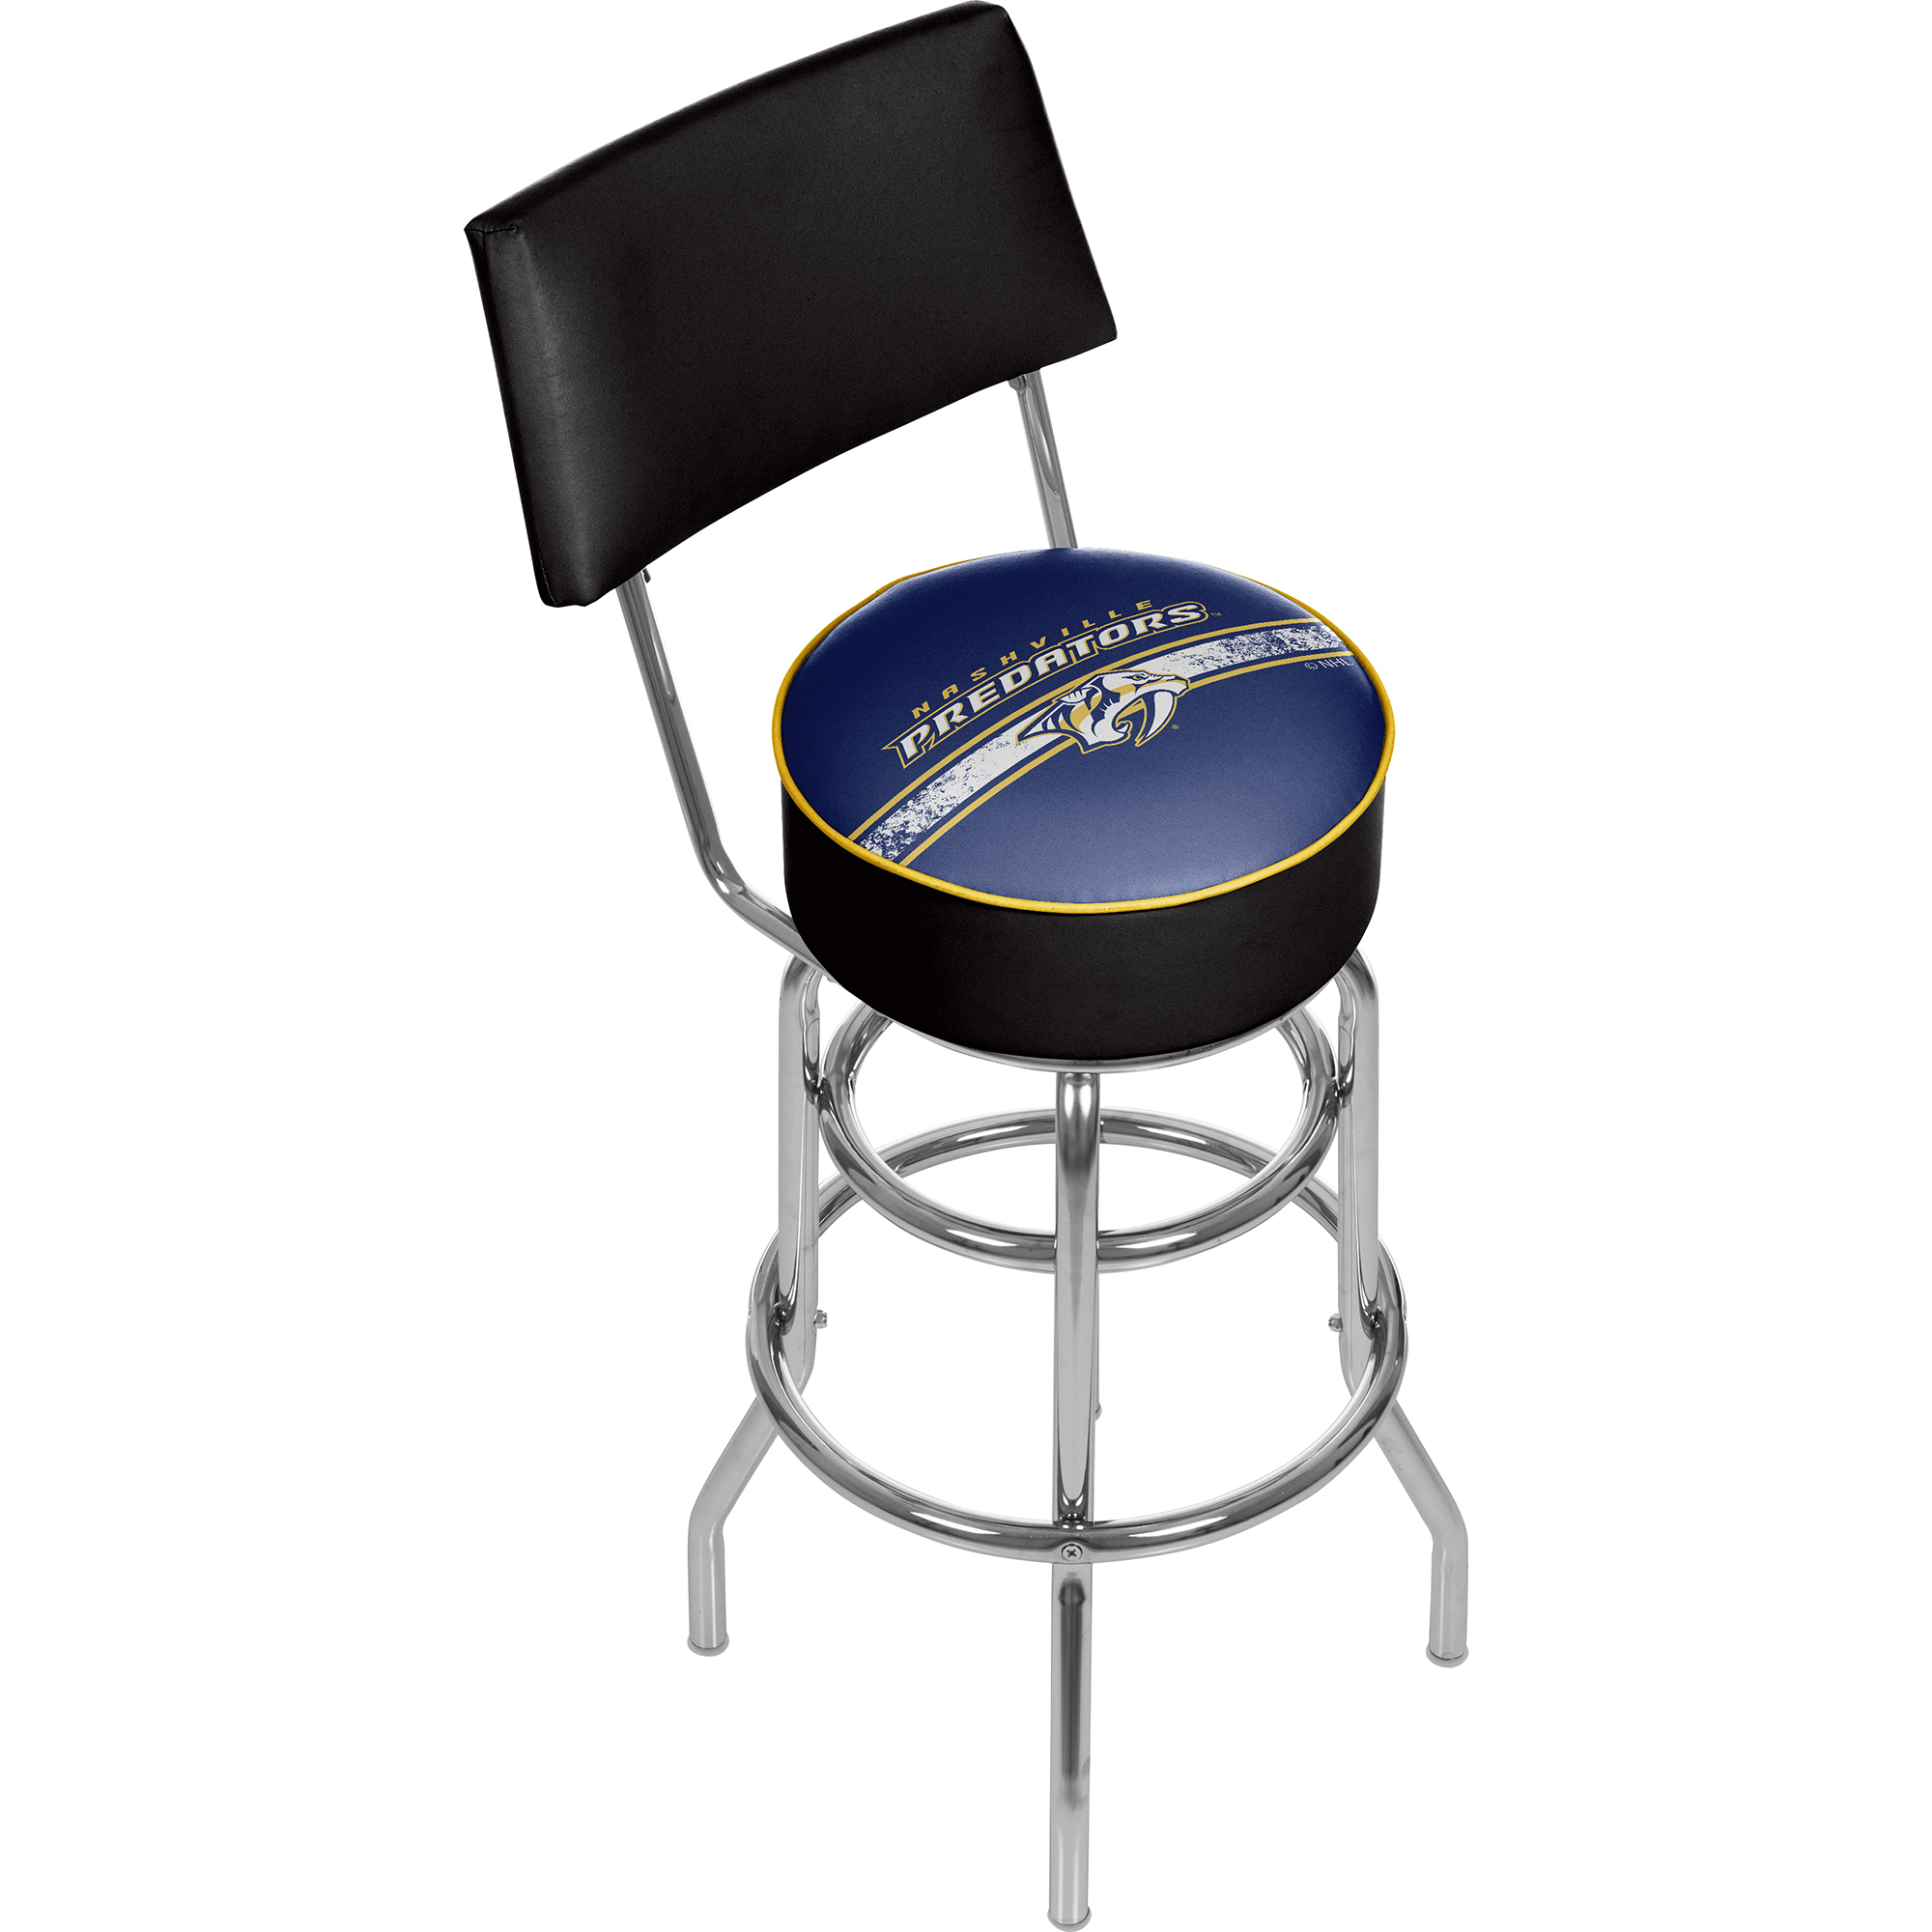 NHL Swivel Swivel Bar Stool with Back - Nashville Predators 589b8bebc98fc43a00165f47